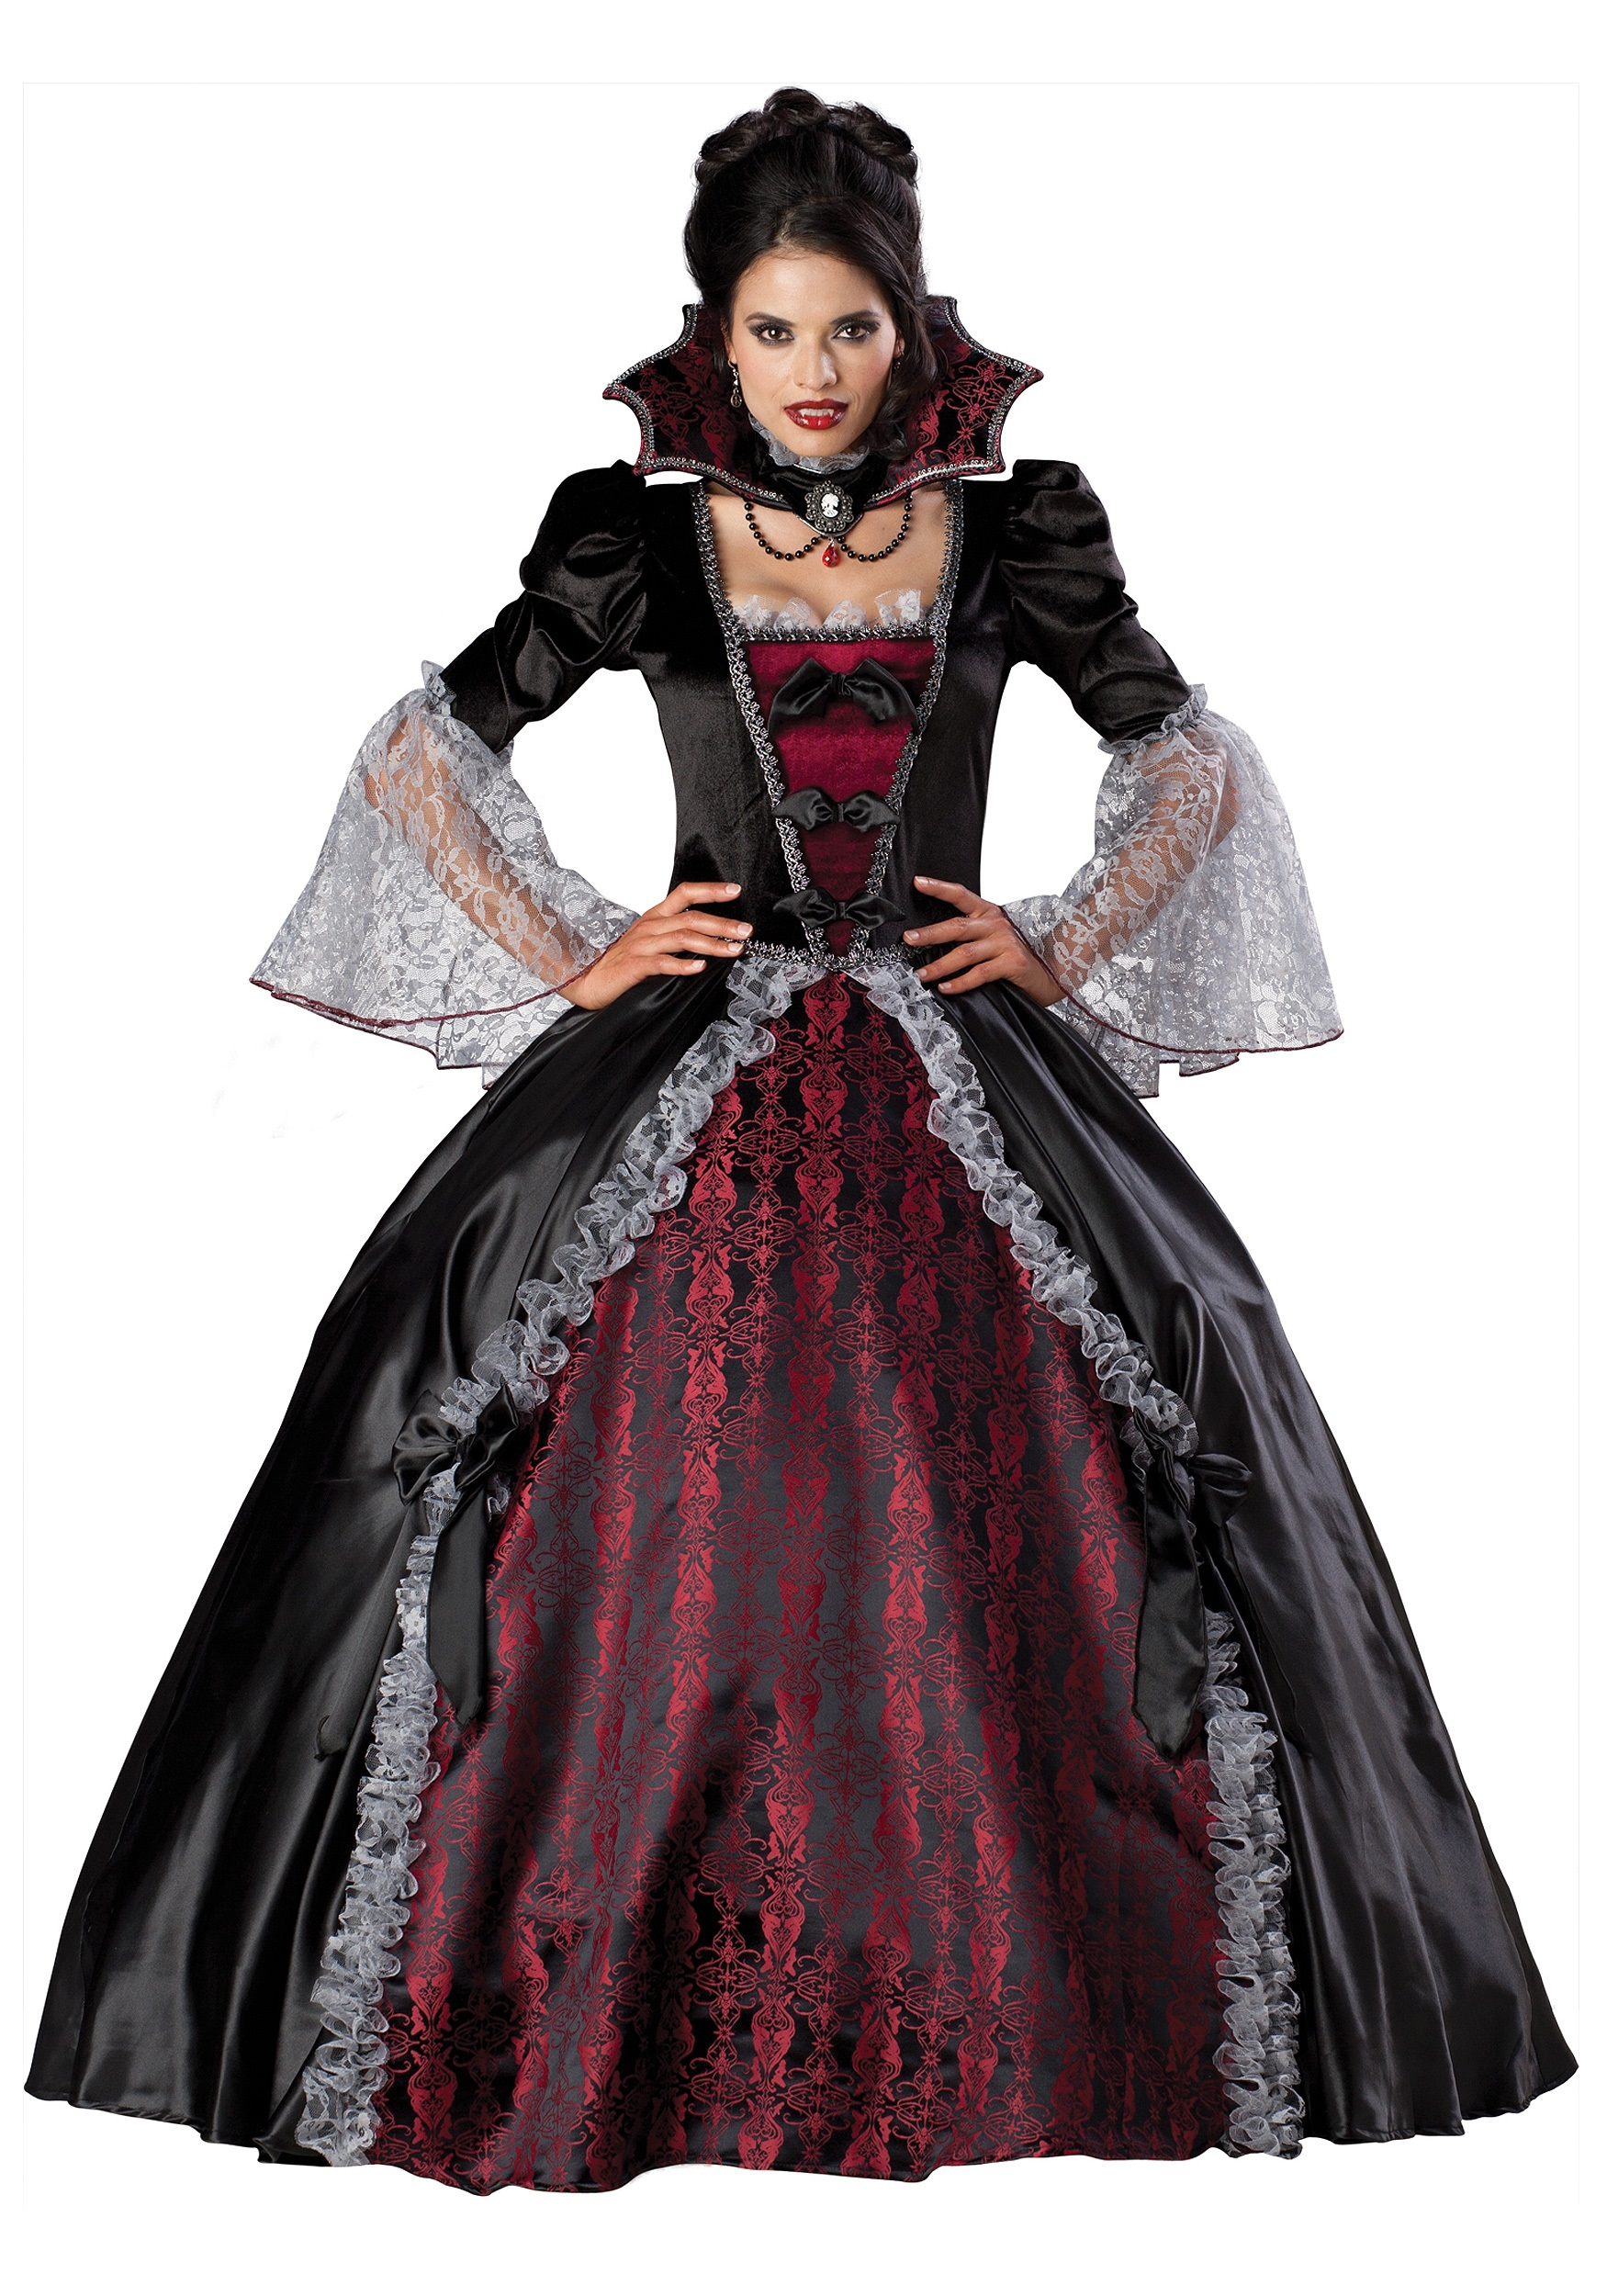 French V&iress Costume  sc 1 st  Halloween Costume Ideas & French Vampiress Costume - Womens Vampire Costumes